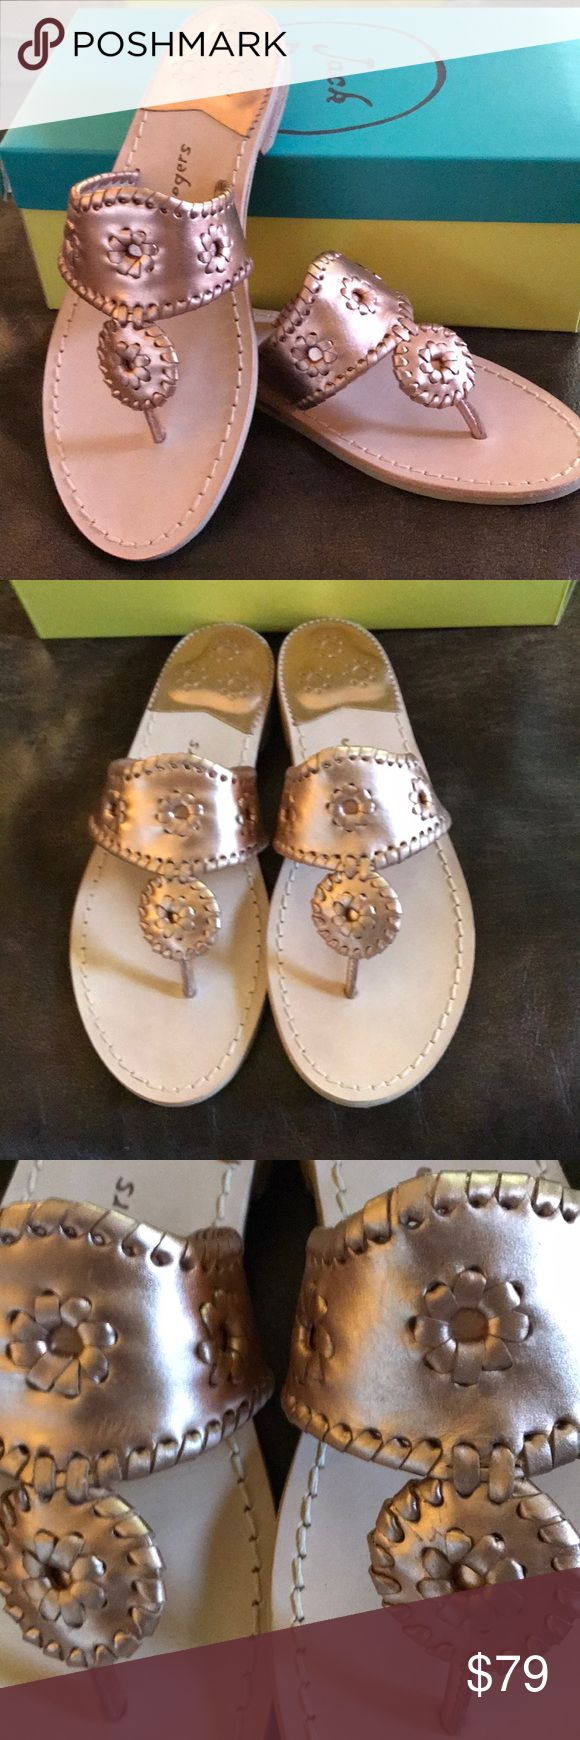 New! Jack Rogers Palm Beach Rose Gold 8m New in box....Jack Rogers Palm Beach Flat Sandals are perfect in every way! Who doesn't adore rose gold? 8m Jack Rogers Shoes Sandals